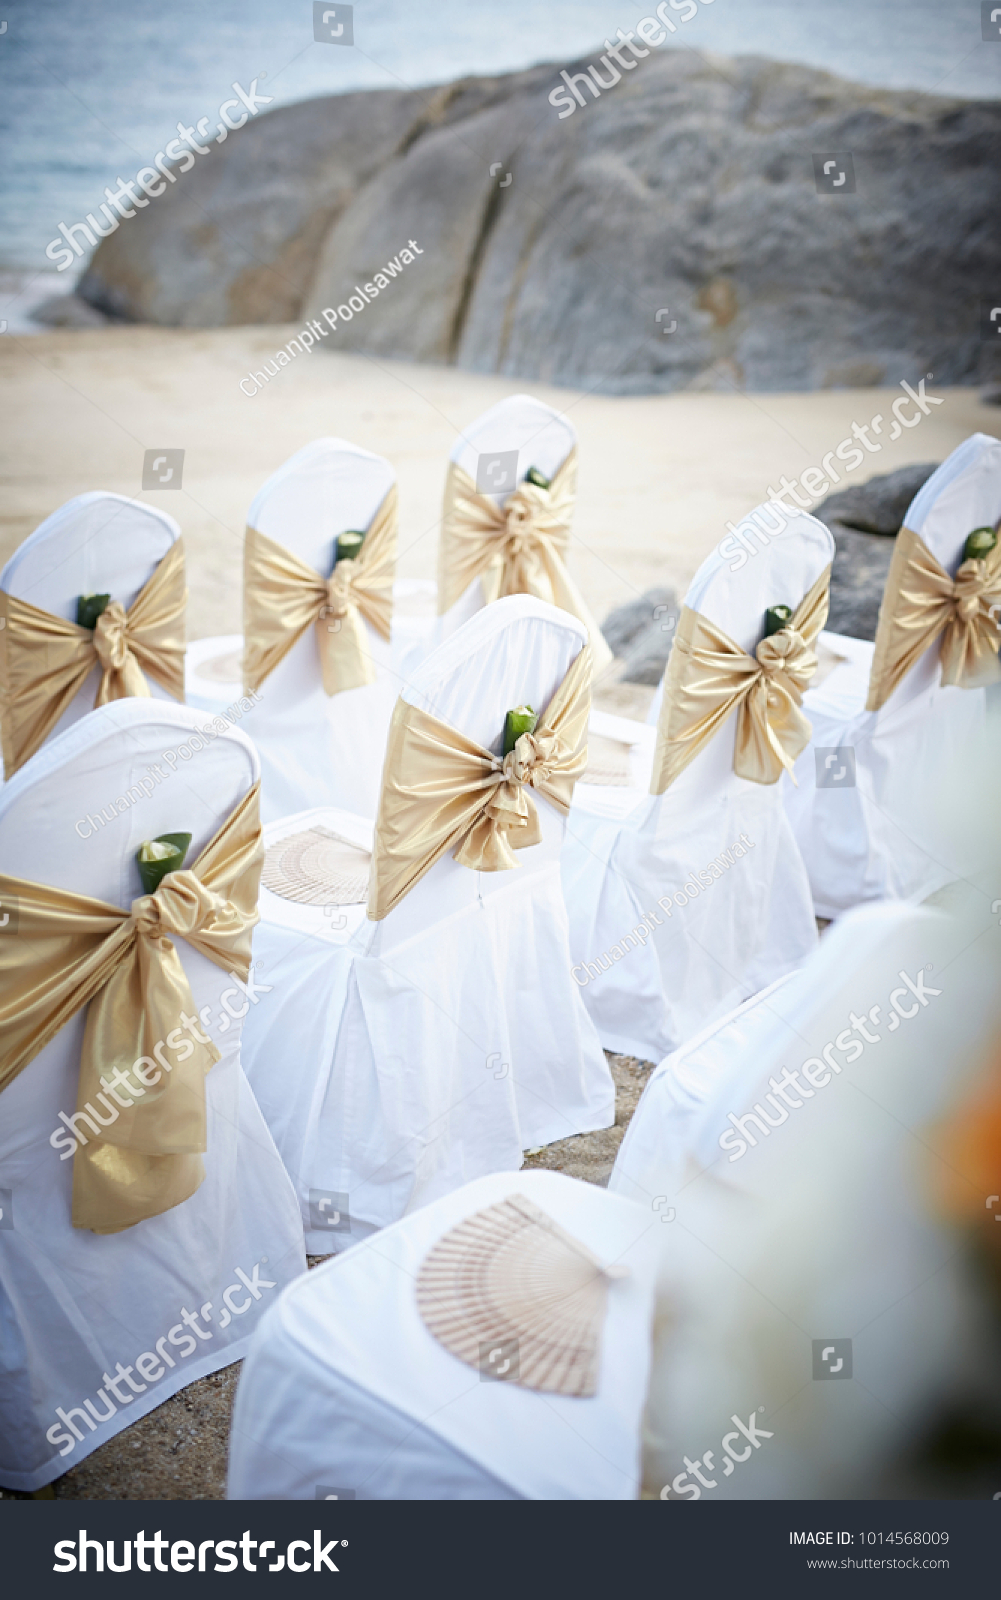 Wedding Decoration White Chairs Cover By Stock Photo Edit Now 1014568009